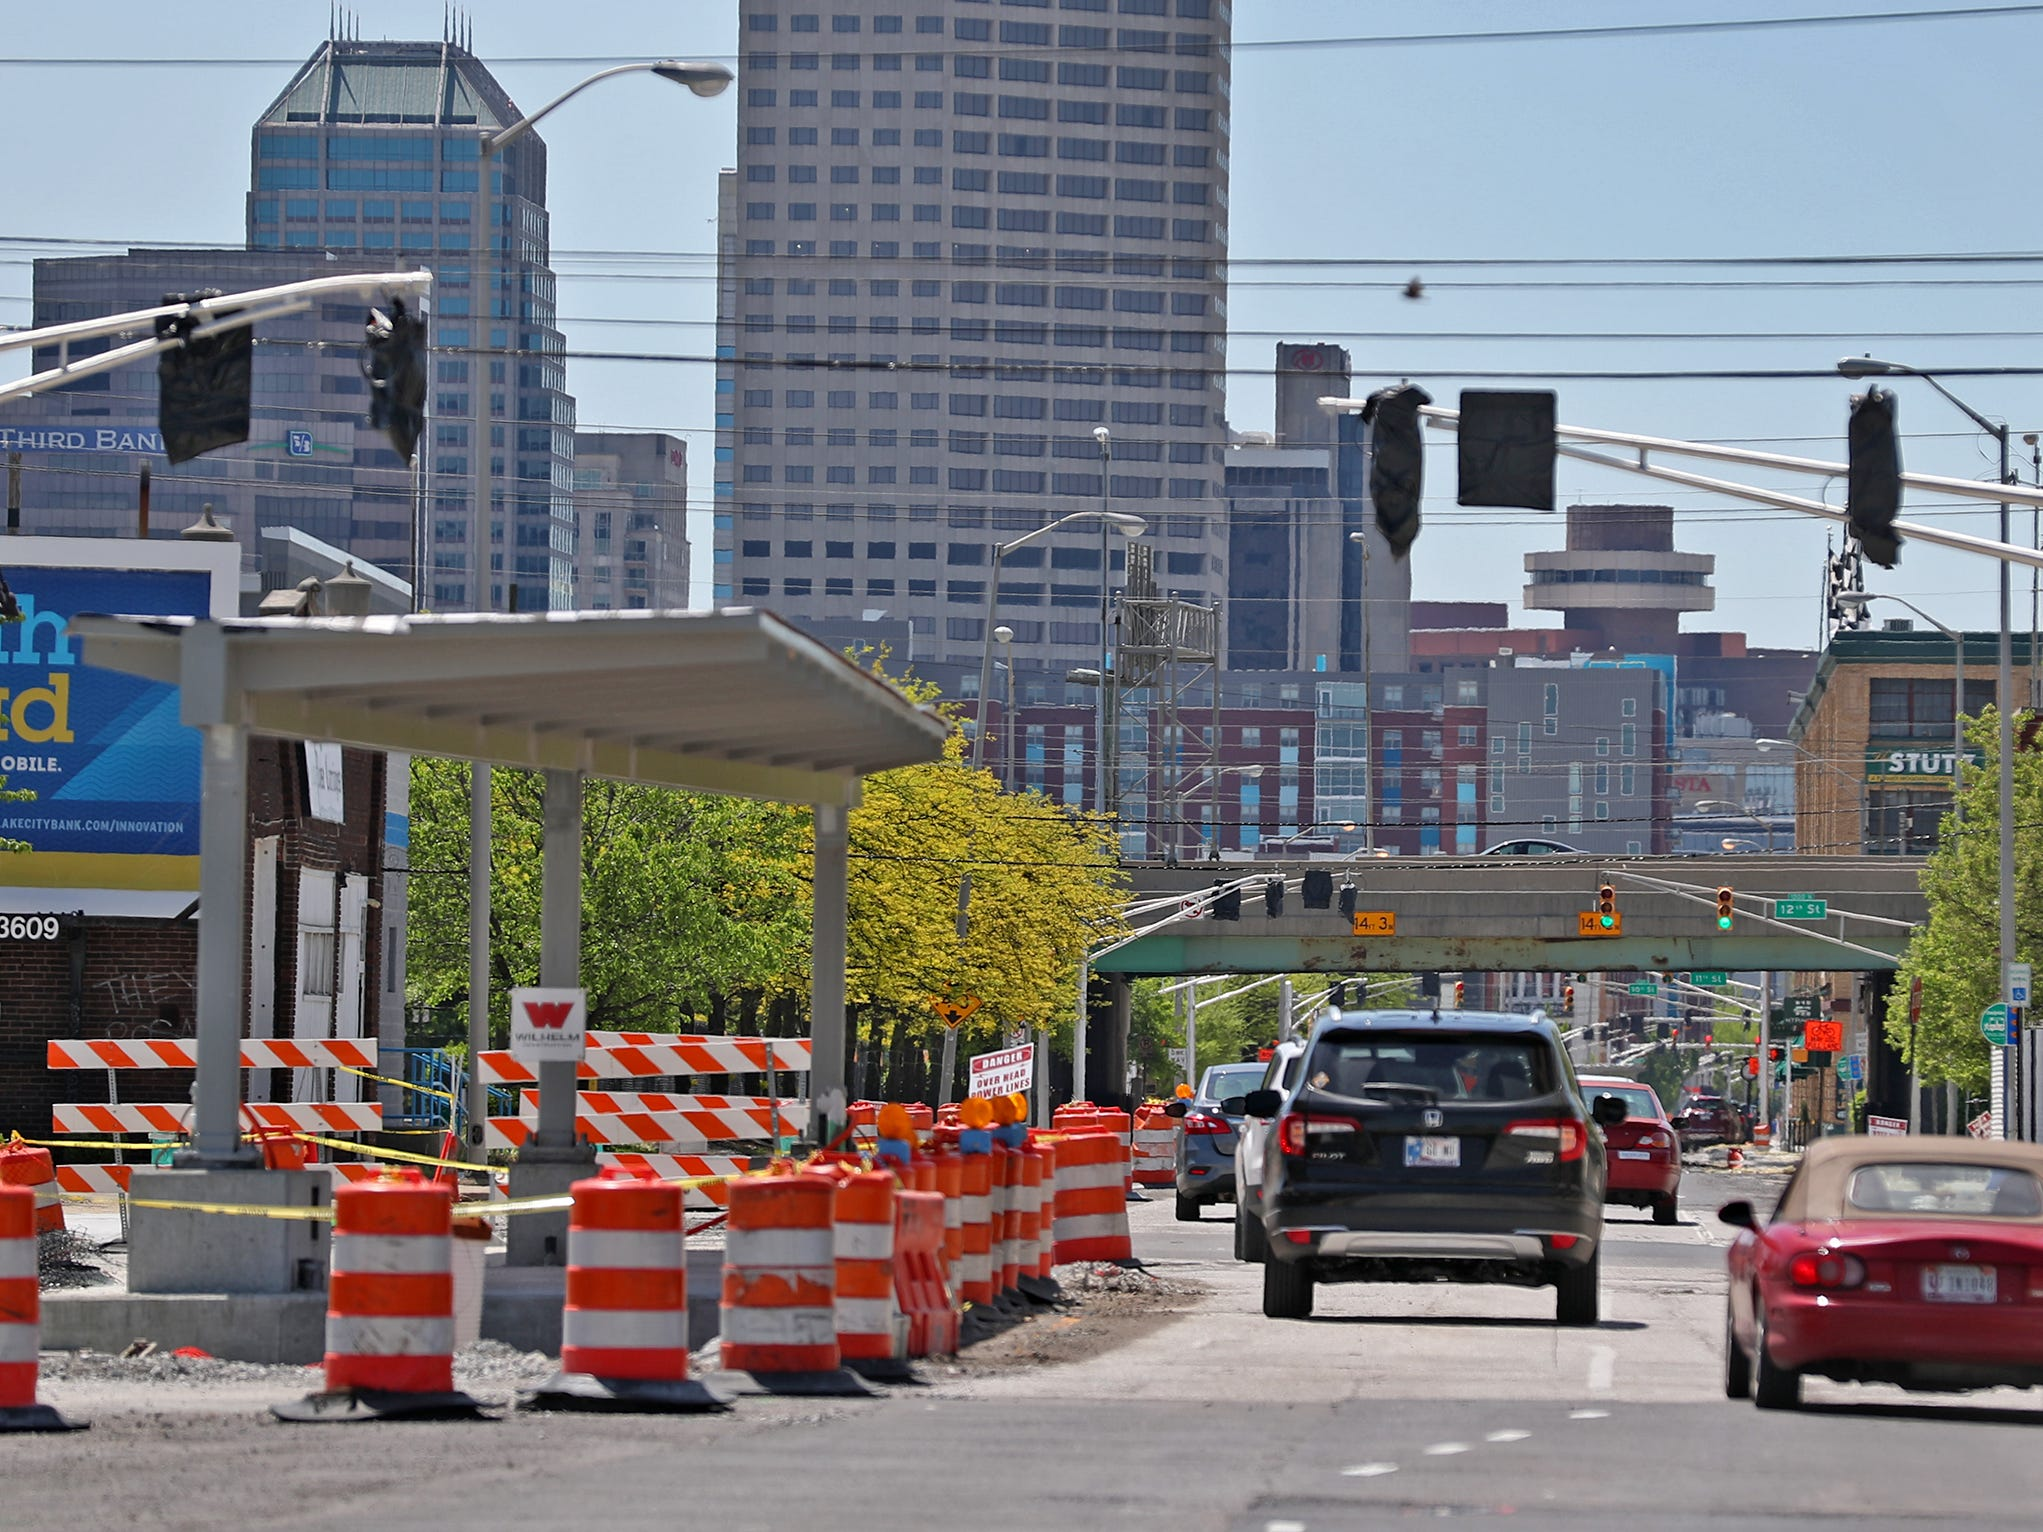 Red Line construction continues in Indianapolis, Sunday, May 5, 2019.  The City has updated the timeline when the Red Line Bus Rapid Transit system should open, which is later in 2019 summer.  This is a station looking south on Capitol Ave. in downtown.